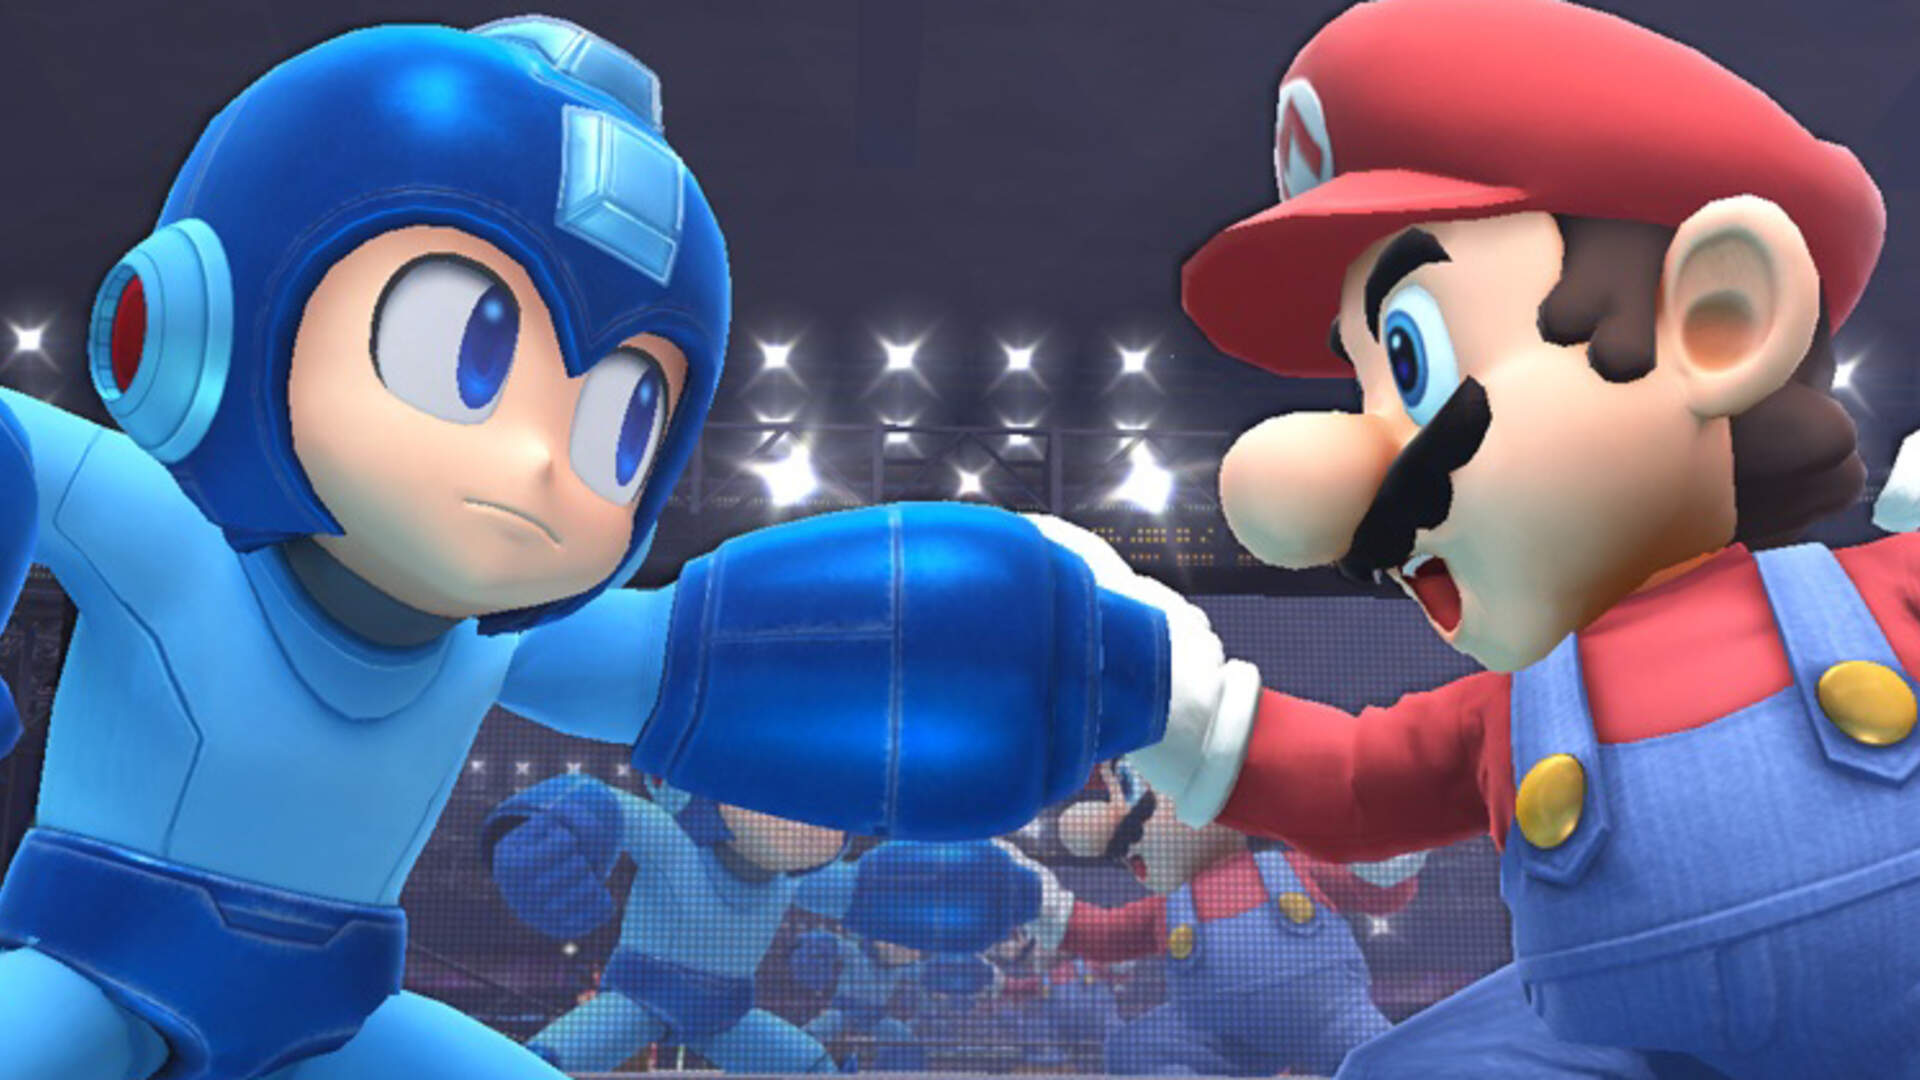 Super Smash Bros. 3DS Review: A Smashing Port